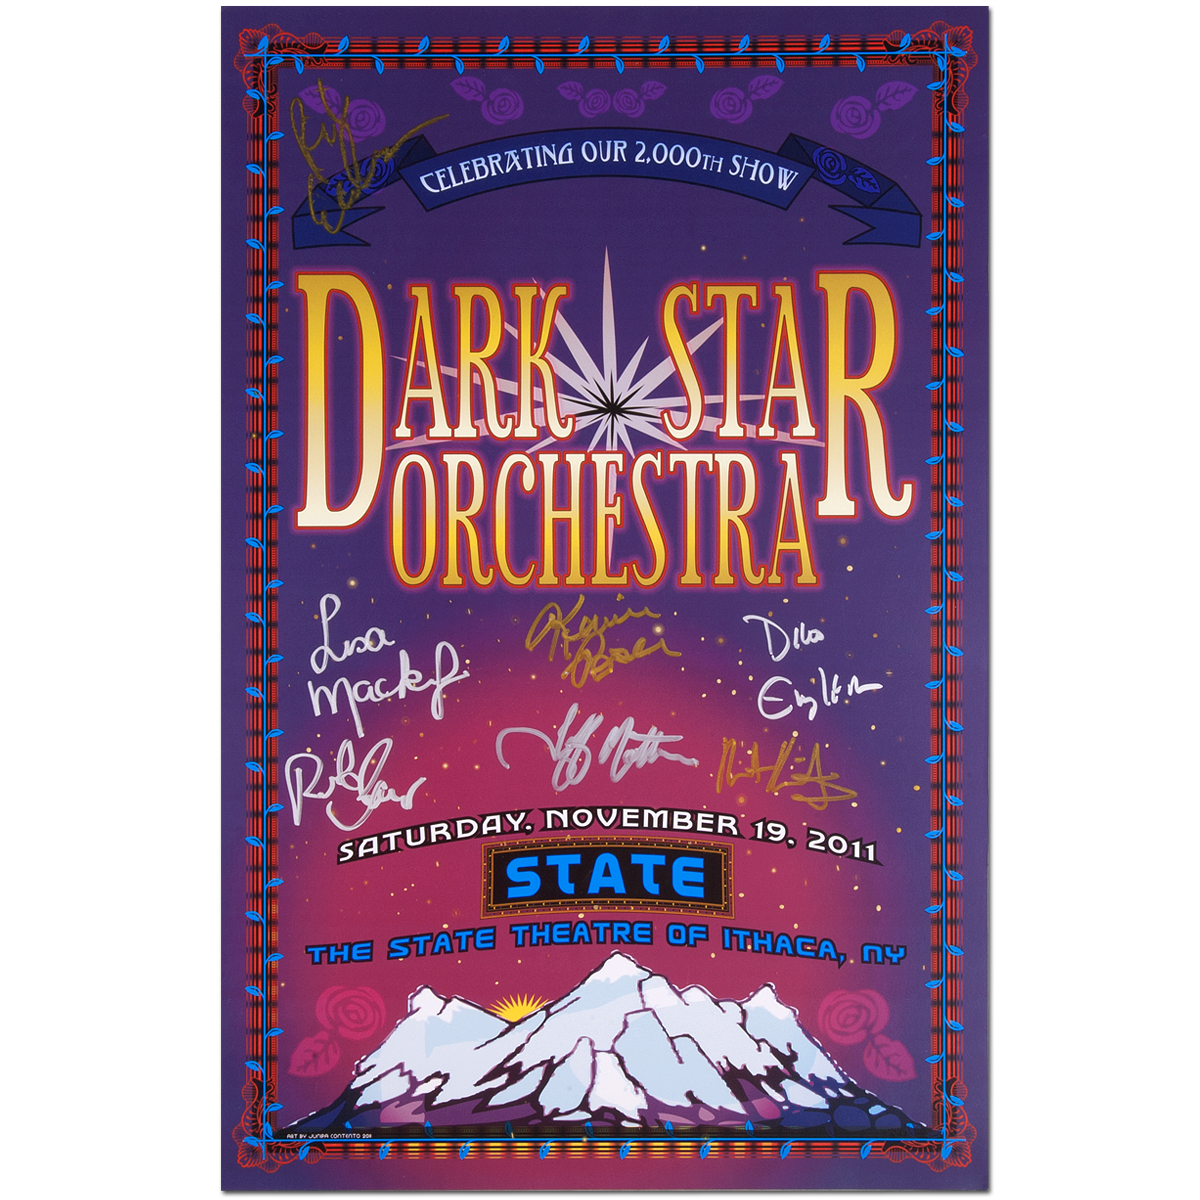 Dark Star Orchestra 2011 Ithaca, NY Signed Poster